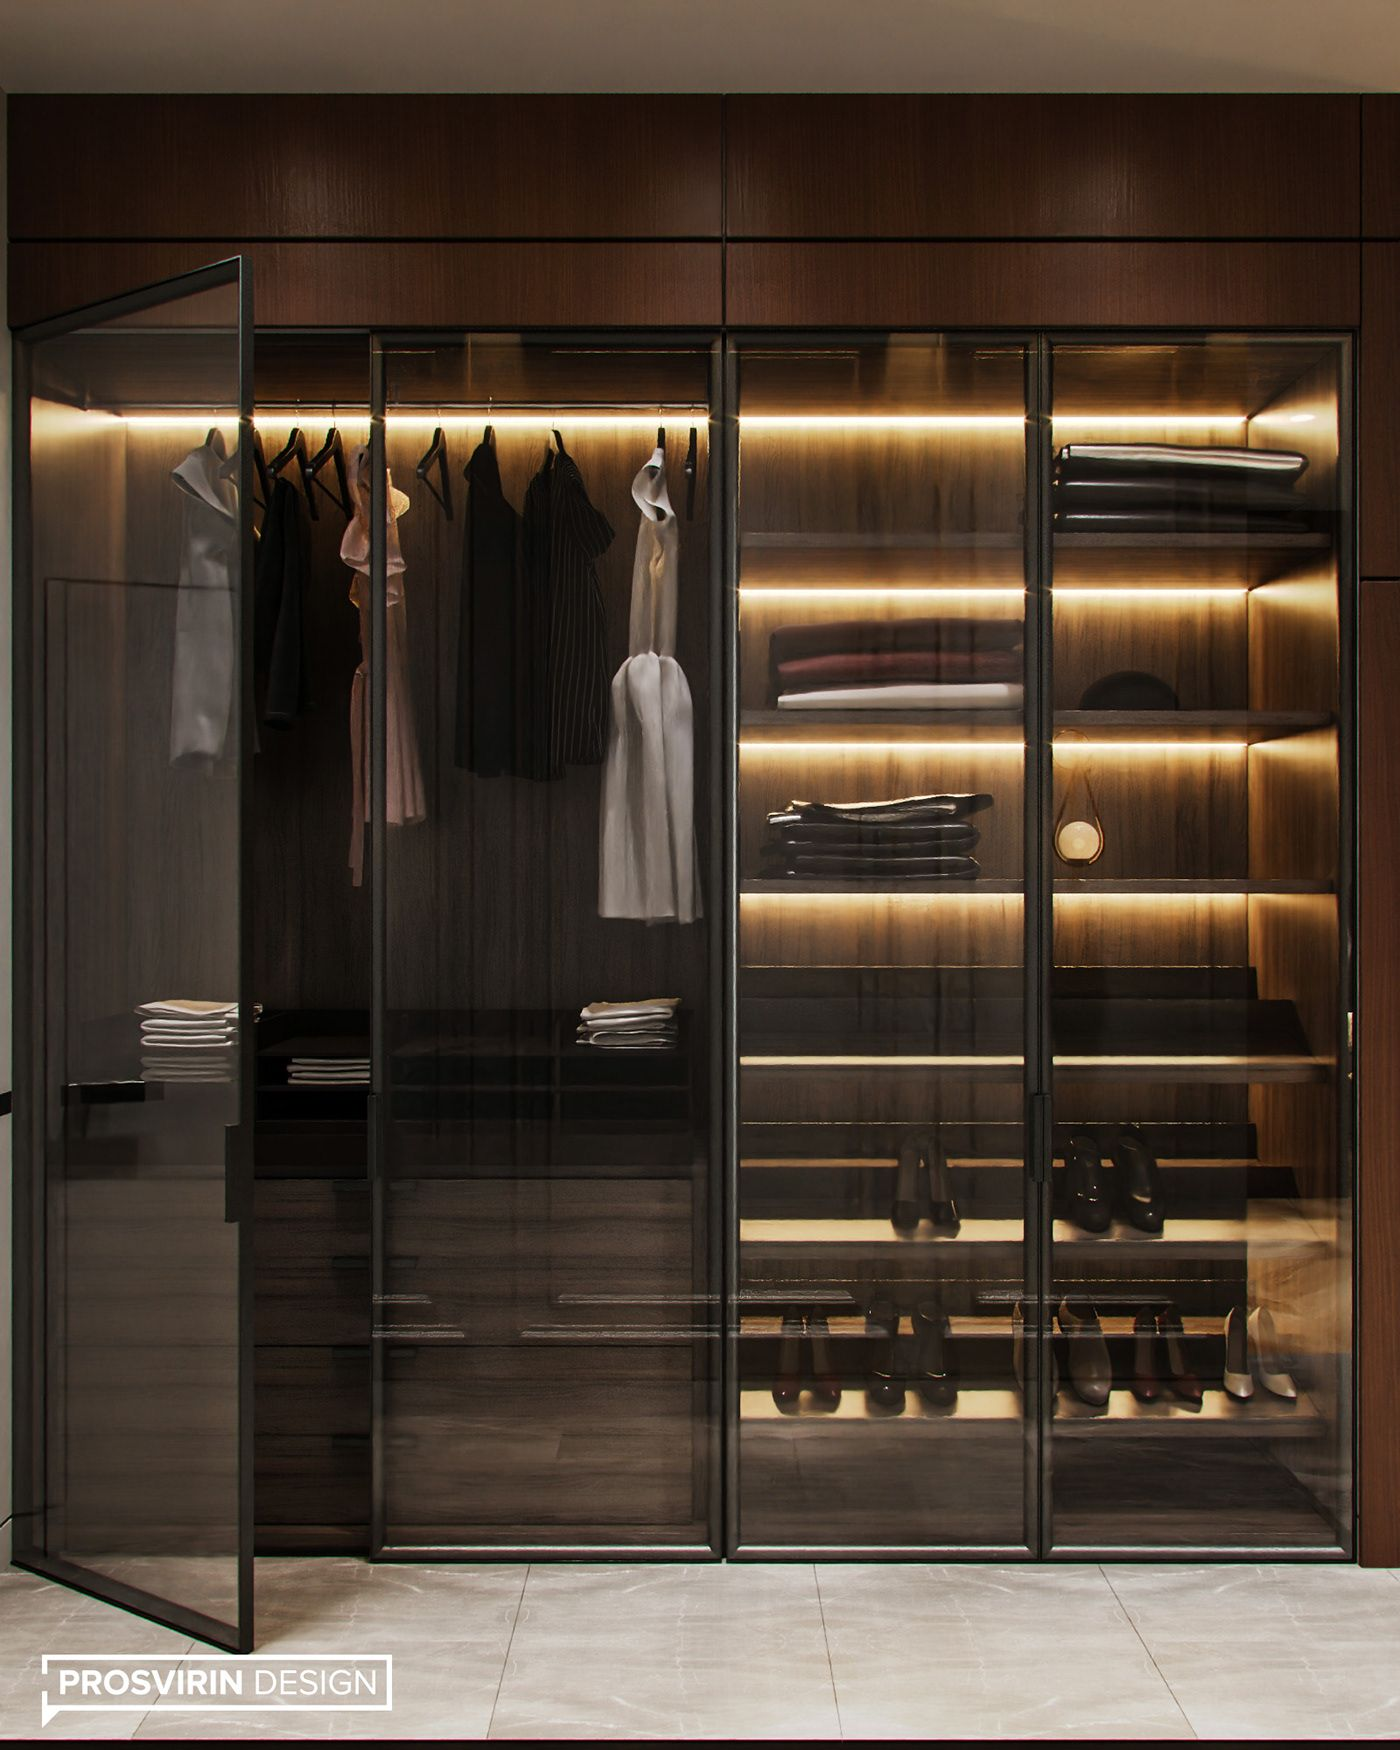 Prosvirin Design On Behance In 2020 Luxury Closets Design Dressing Room Design Luxurious Bedrooms